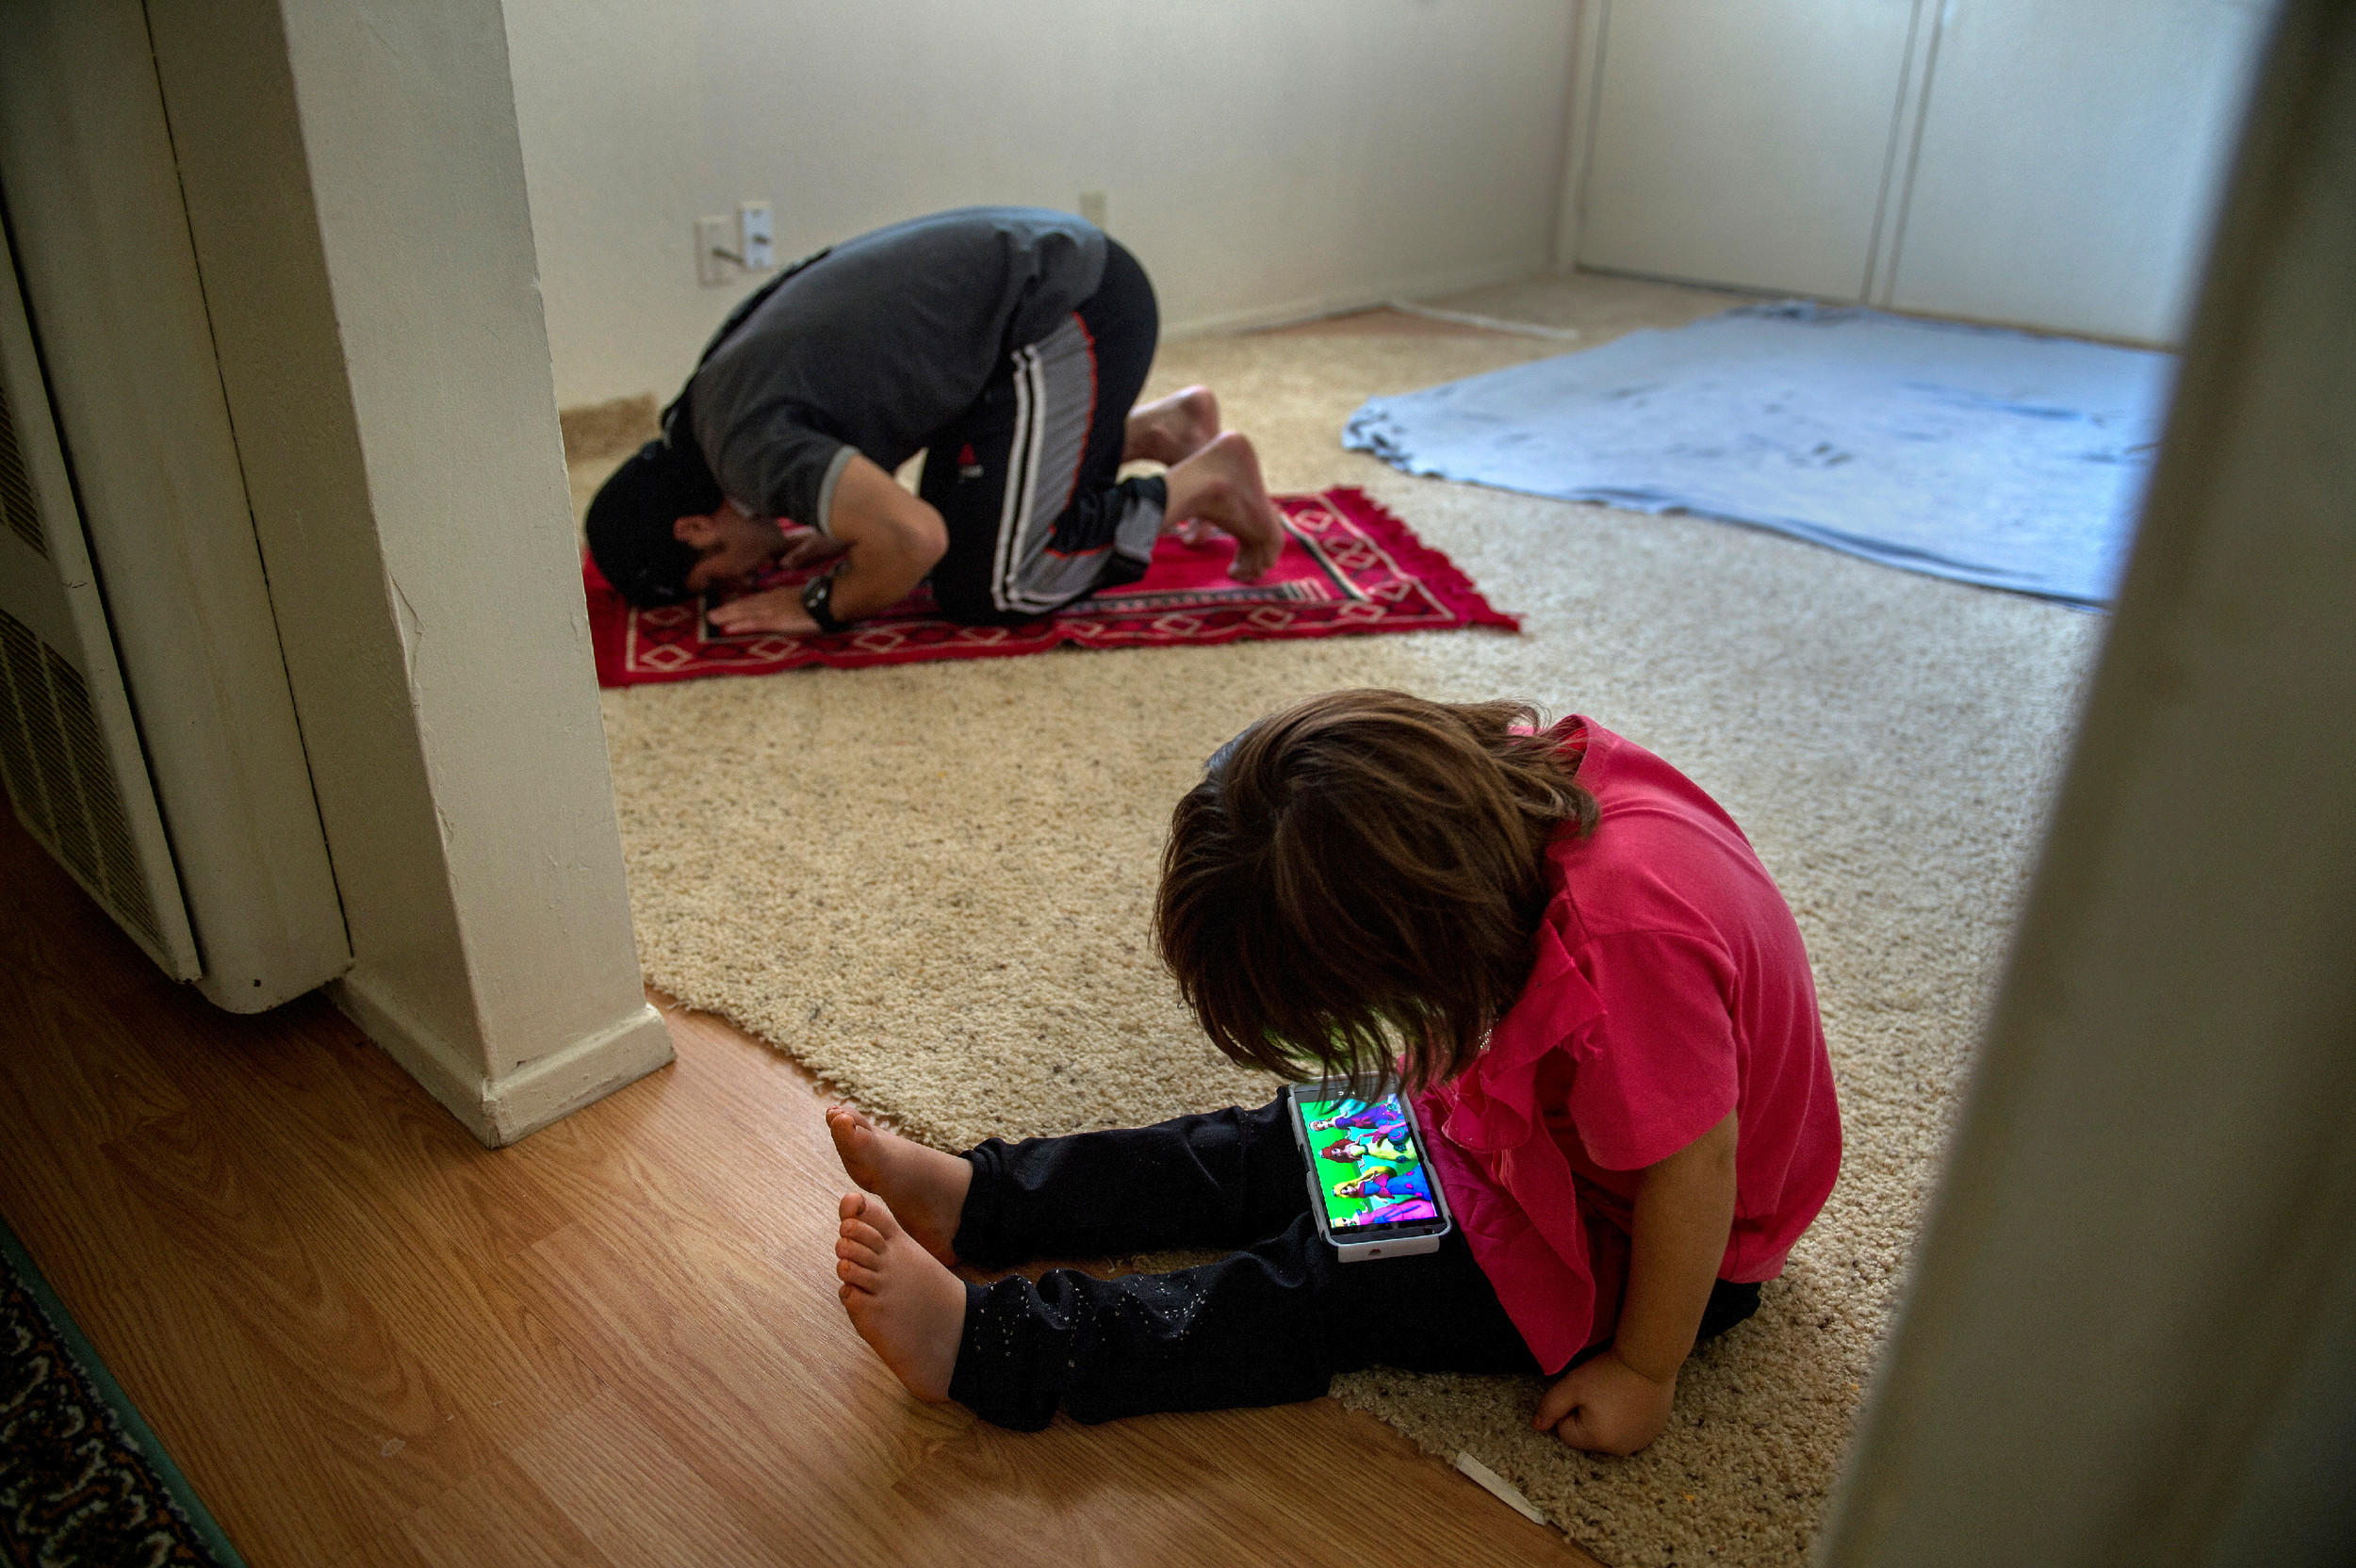 As Abdul Farhad Ghafoori says his prayers, his daughter, Kayinat, 4, watches American cartoons on his cellphone. Without toys available, he handed her the phone to calm her after her mother left for ESL class. Finding affordable day care is a struggle for the refugees, whose wives are required to take ESL classes.